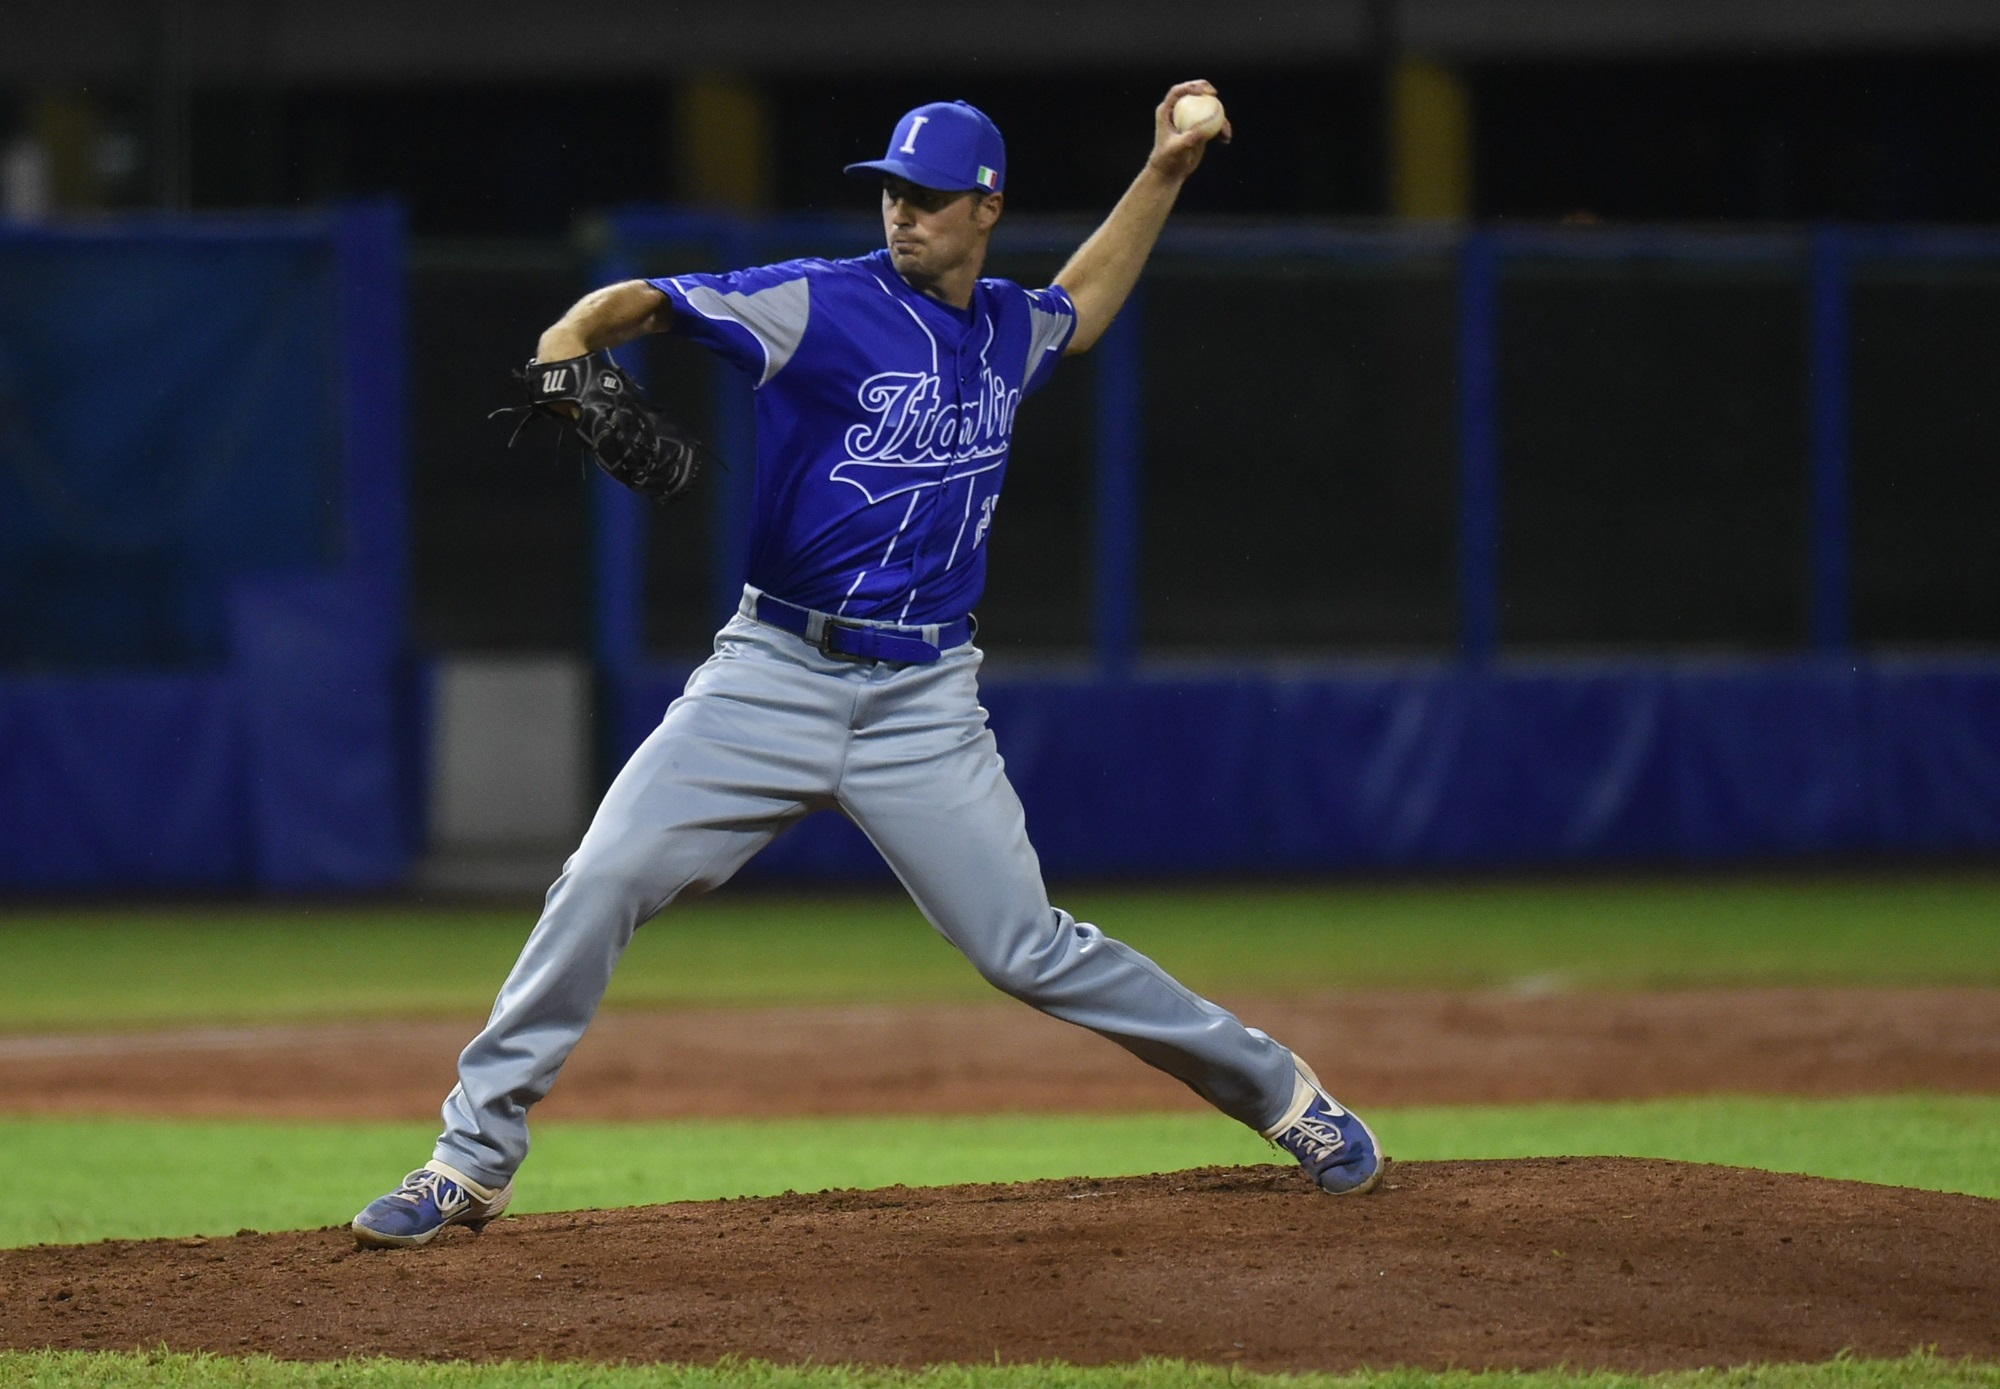 Michael Johnson took the mound for Italy in the bottom of the fourth